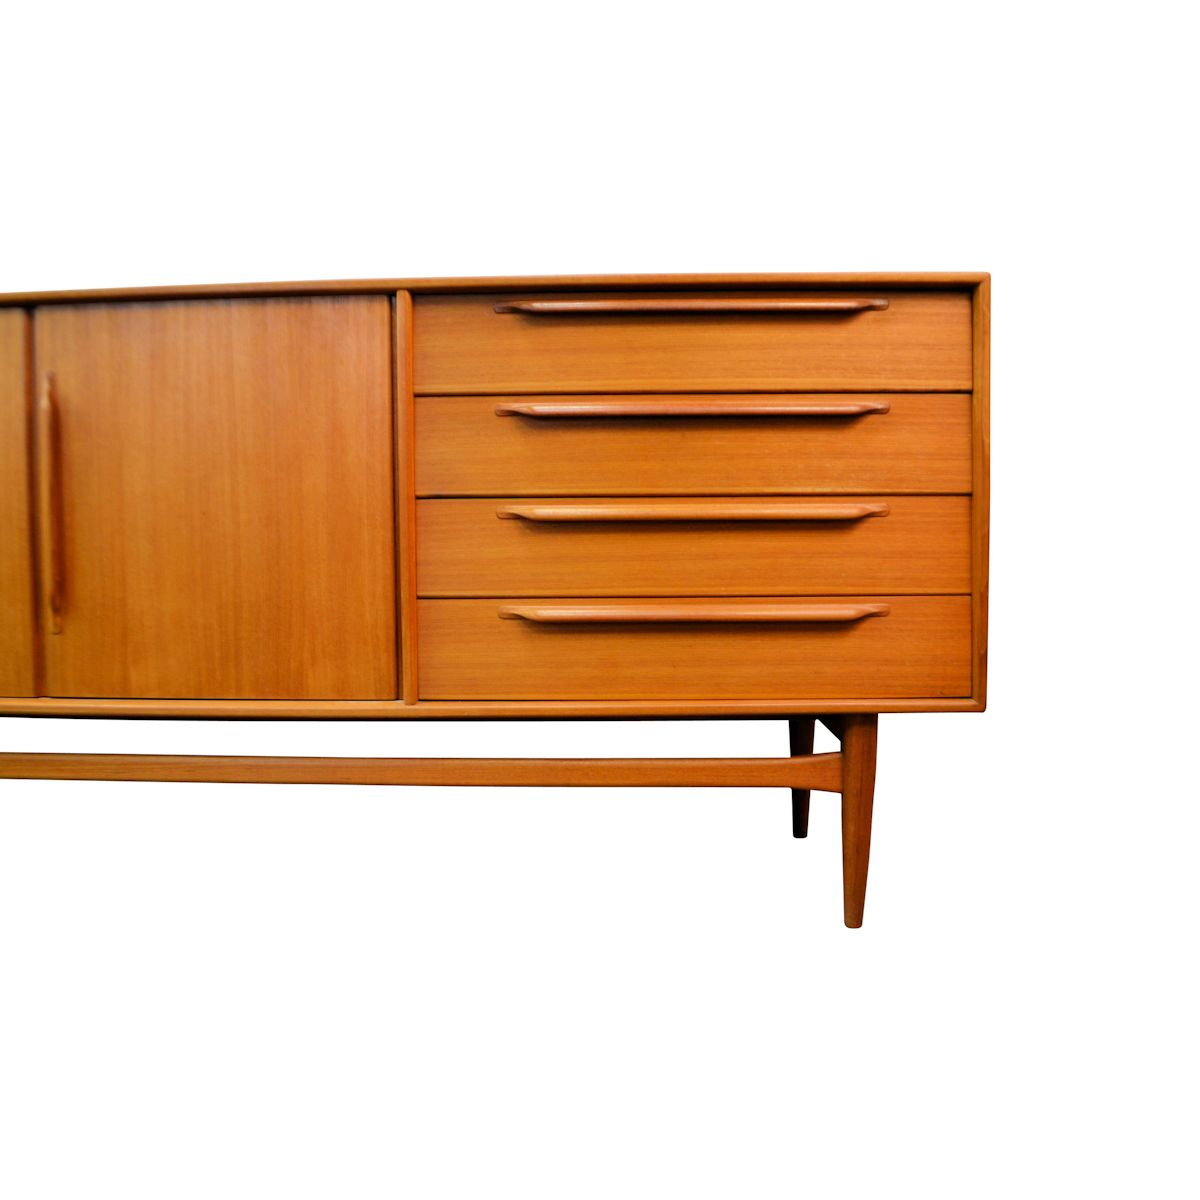 Vintage Sideboard - drawers